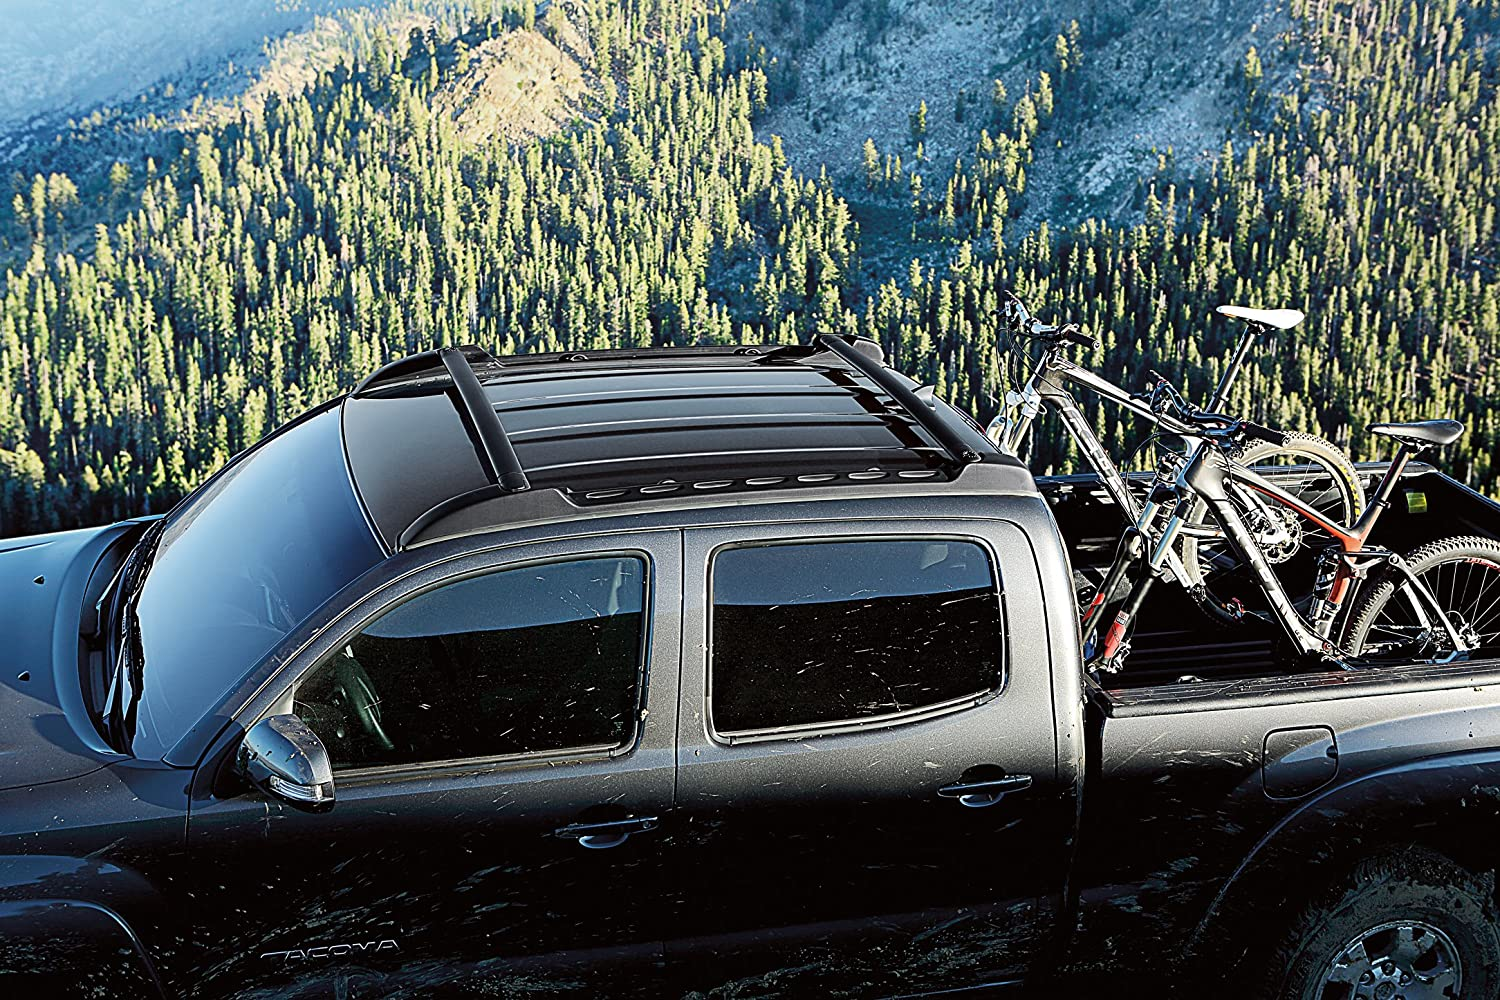 roof tacoma racks cab br toyota and baja double rack c standard pure accessories parts camper acc